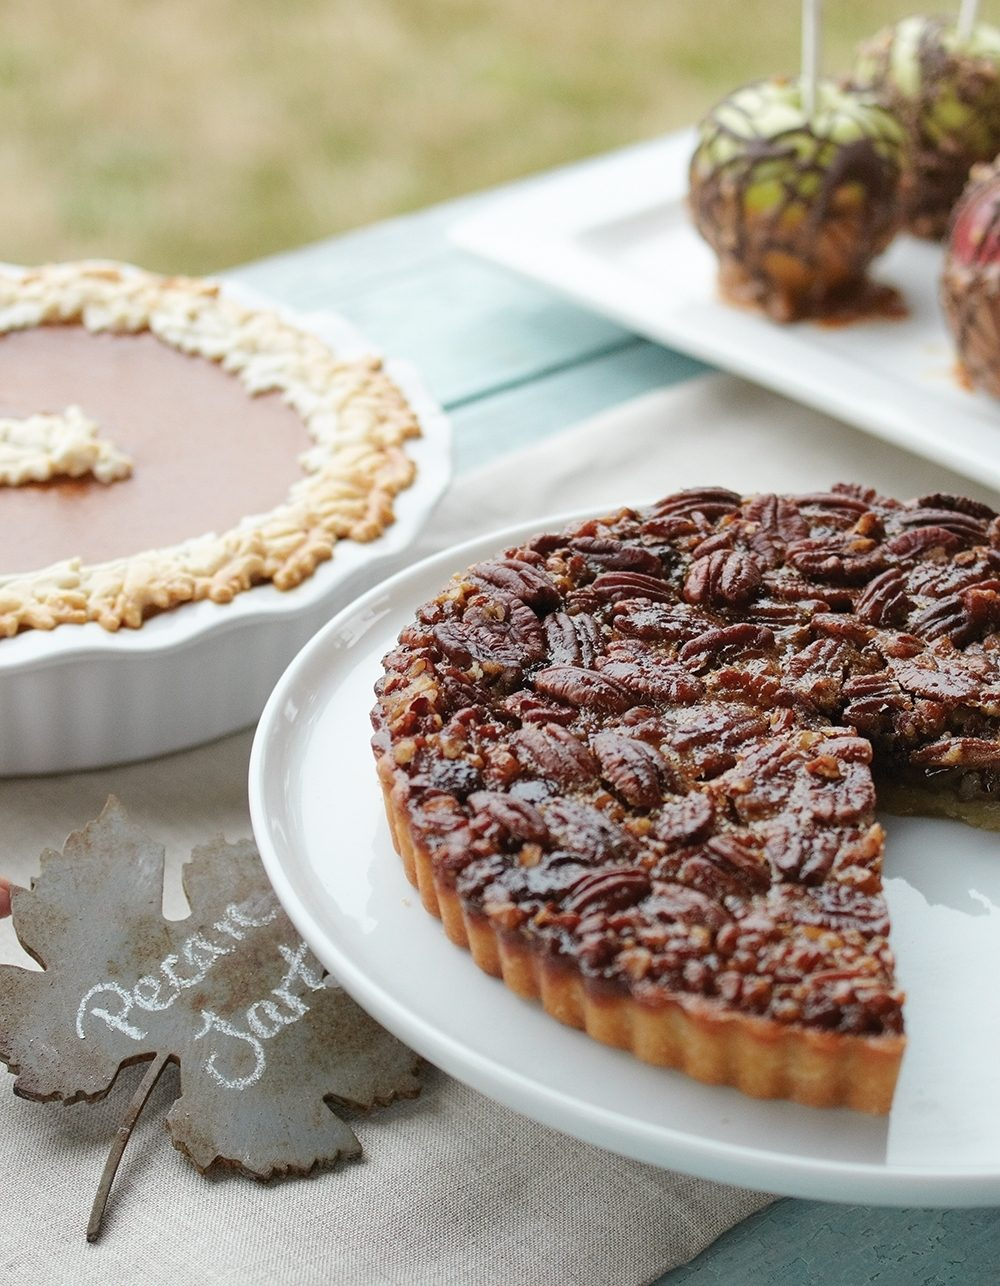 A favorite homemade pumpkin pie recipe edged with leaves made out of pie crust and a purchased chocolate pecan tart promise sweet delight at a casual outdoor fall party.